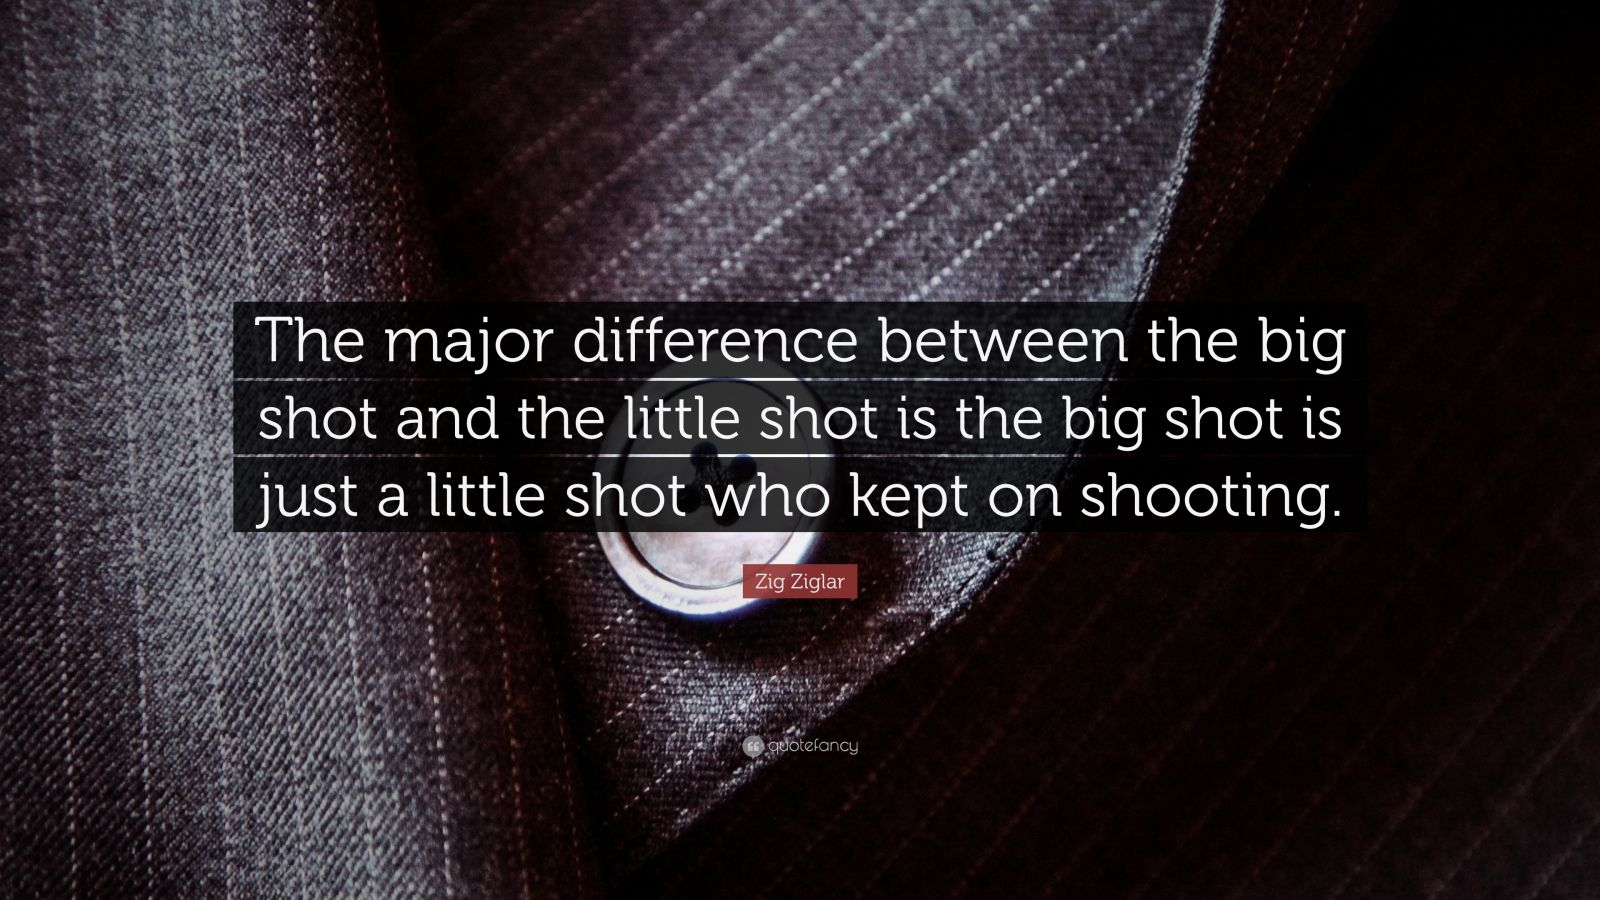 """Zig Ziglar Quote: """"The major difference between the big shot and the little shot is the big shot is just a little shot who kept on shooting."""""""